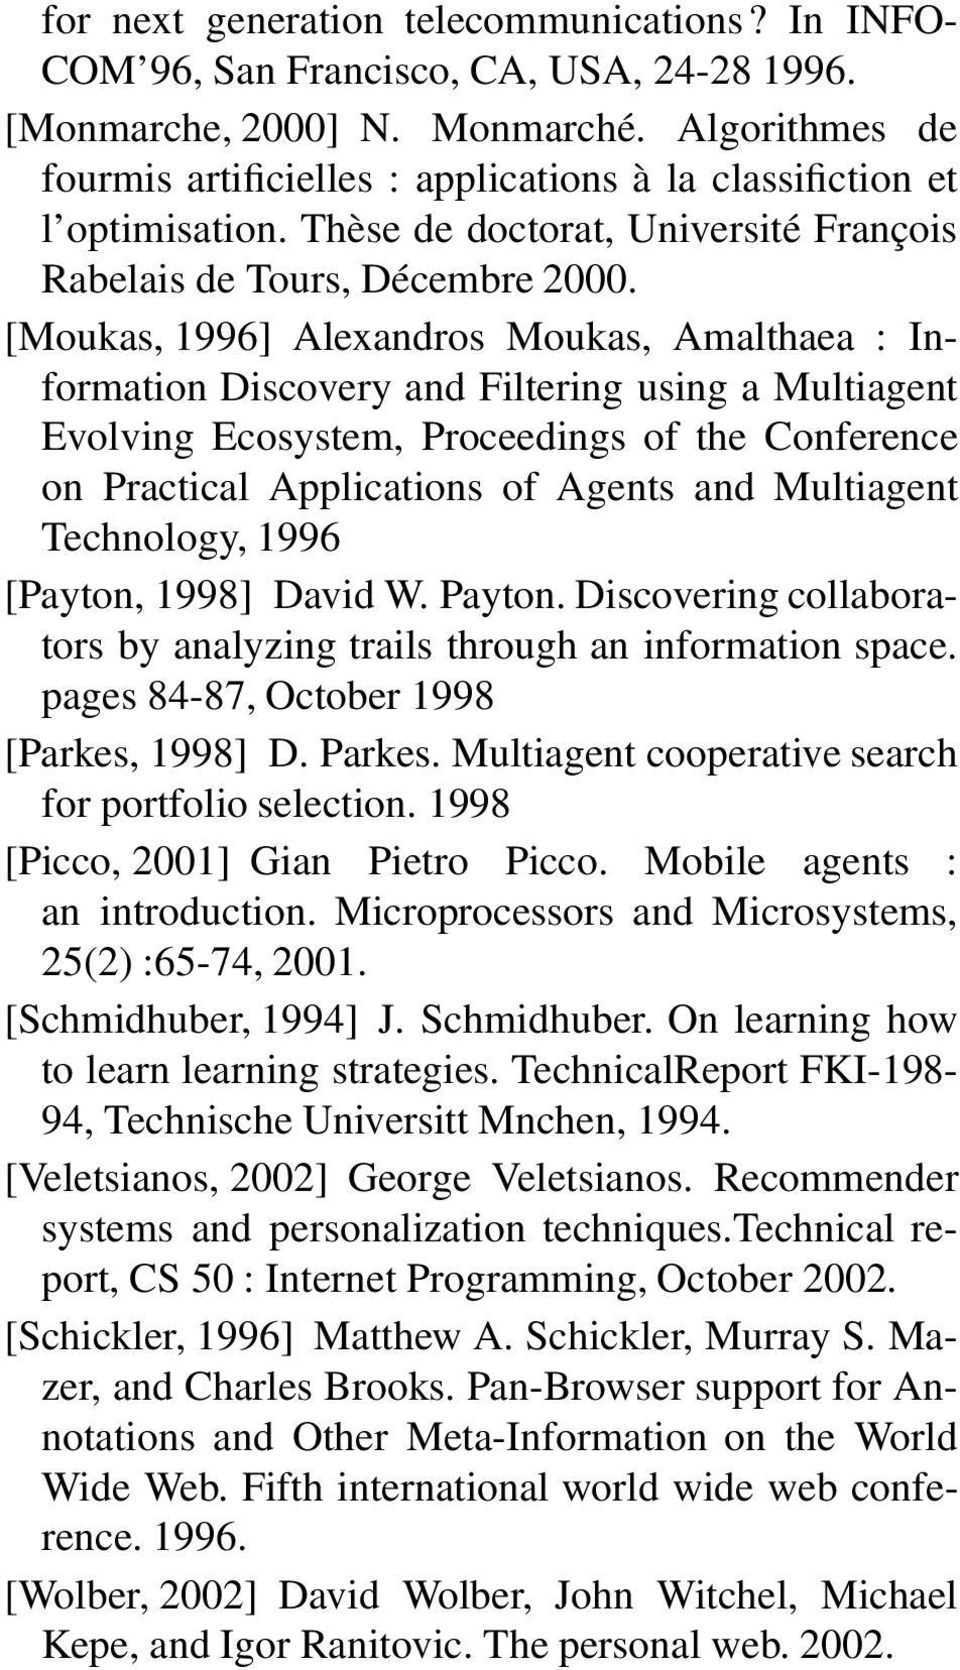 [Moukas, 1996] Alexandros Moukas, Amalthaea : Information Discovery and Filtering using a Multiagent Evolving Ecosystem, Proceedings of the Conference on Practical Applications of Agents and